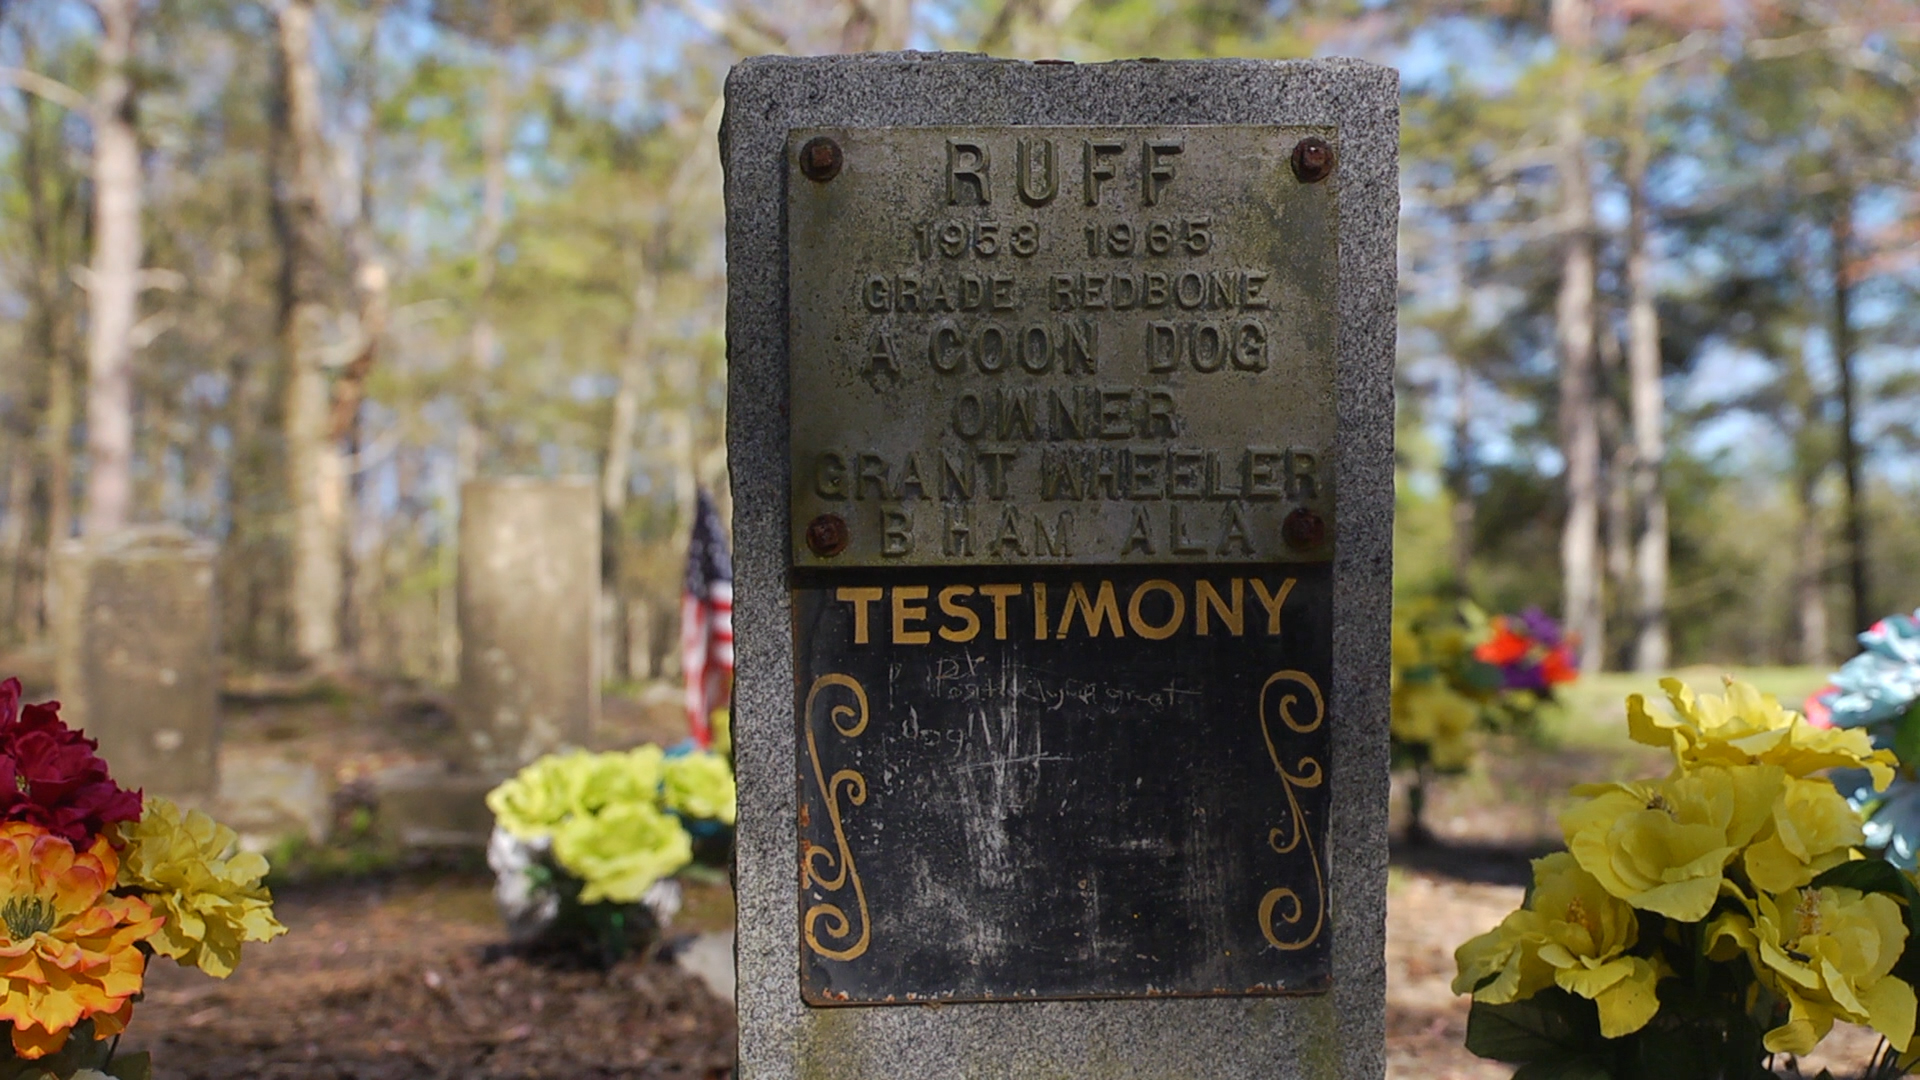 Coon Dog Cemetery in north Alabama